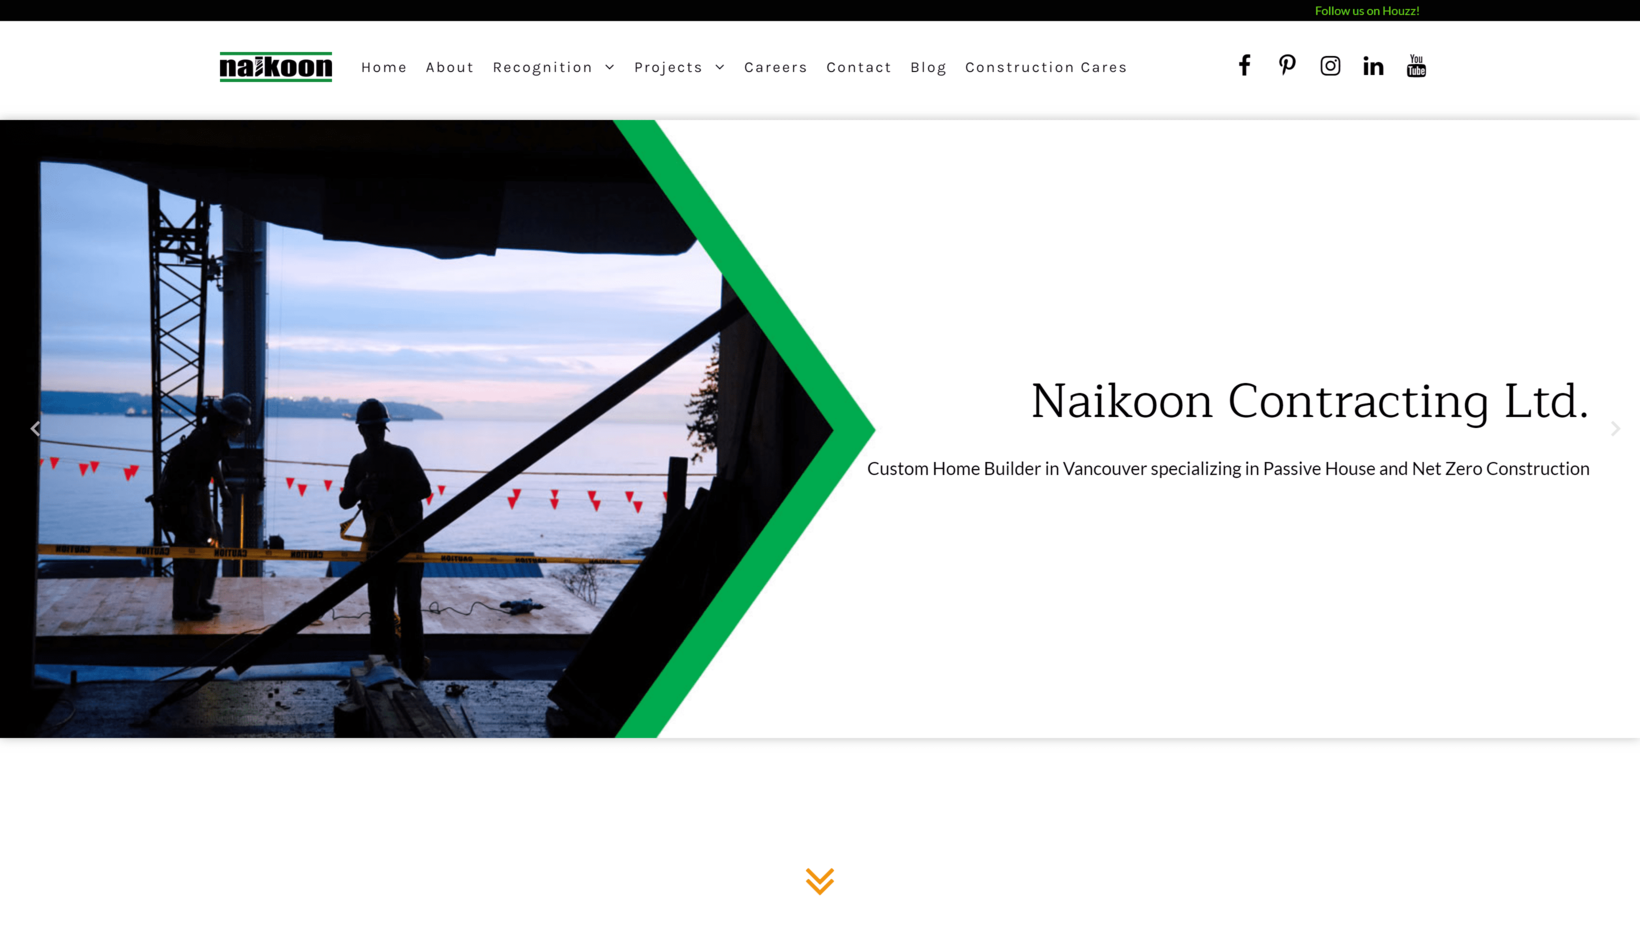 www.naikooncontracting.com_